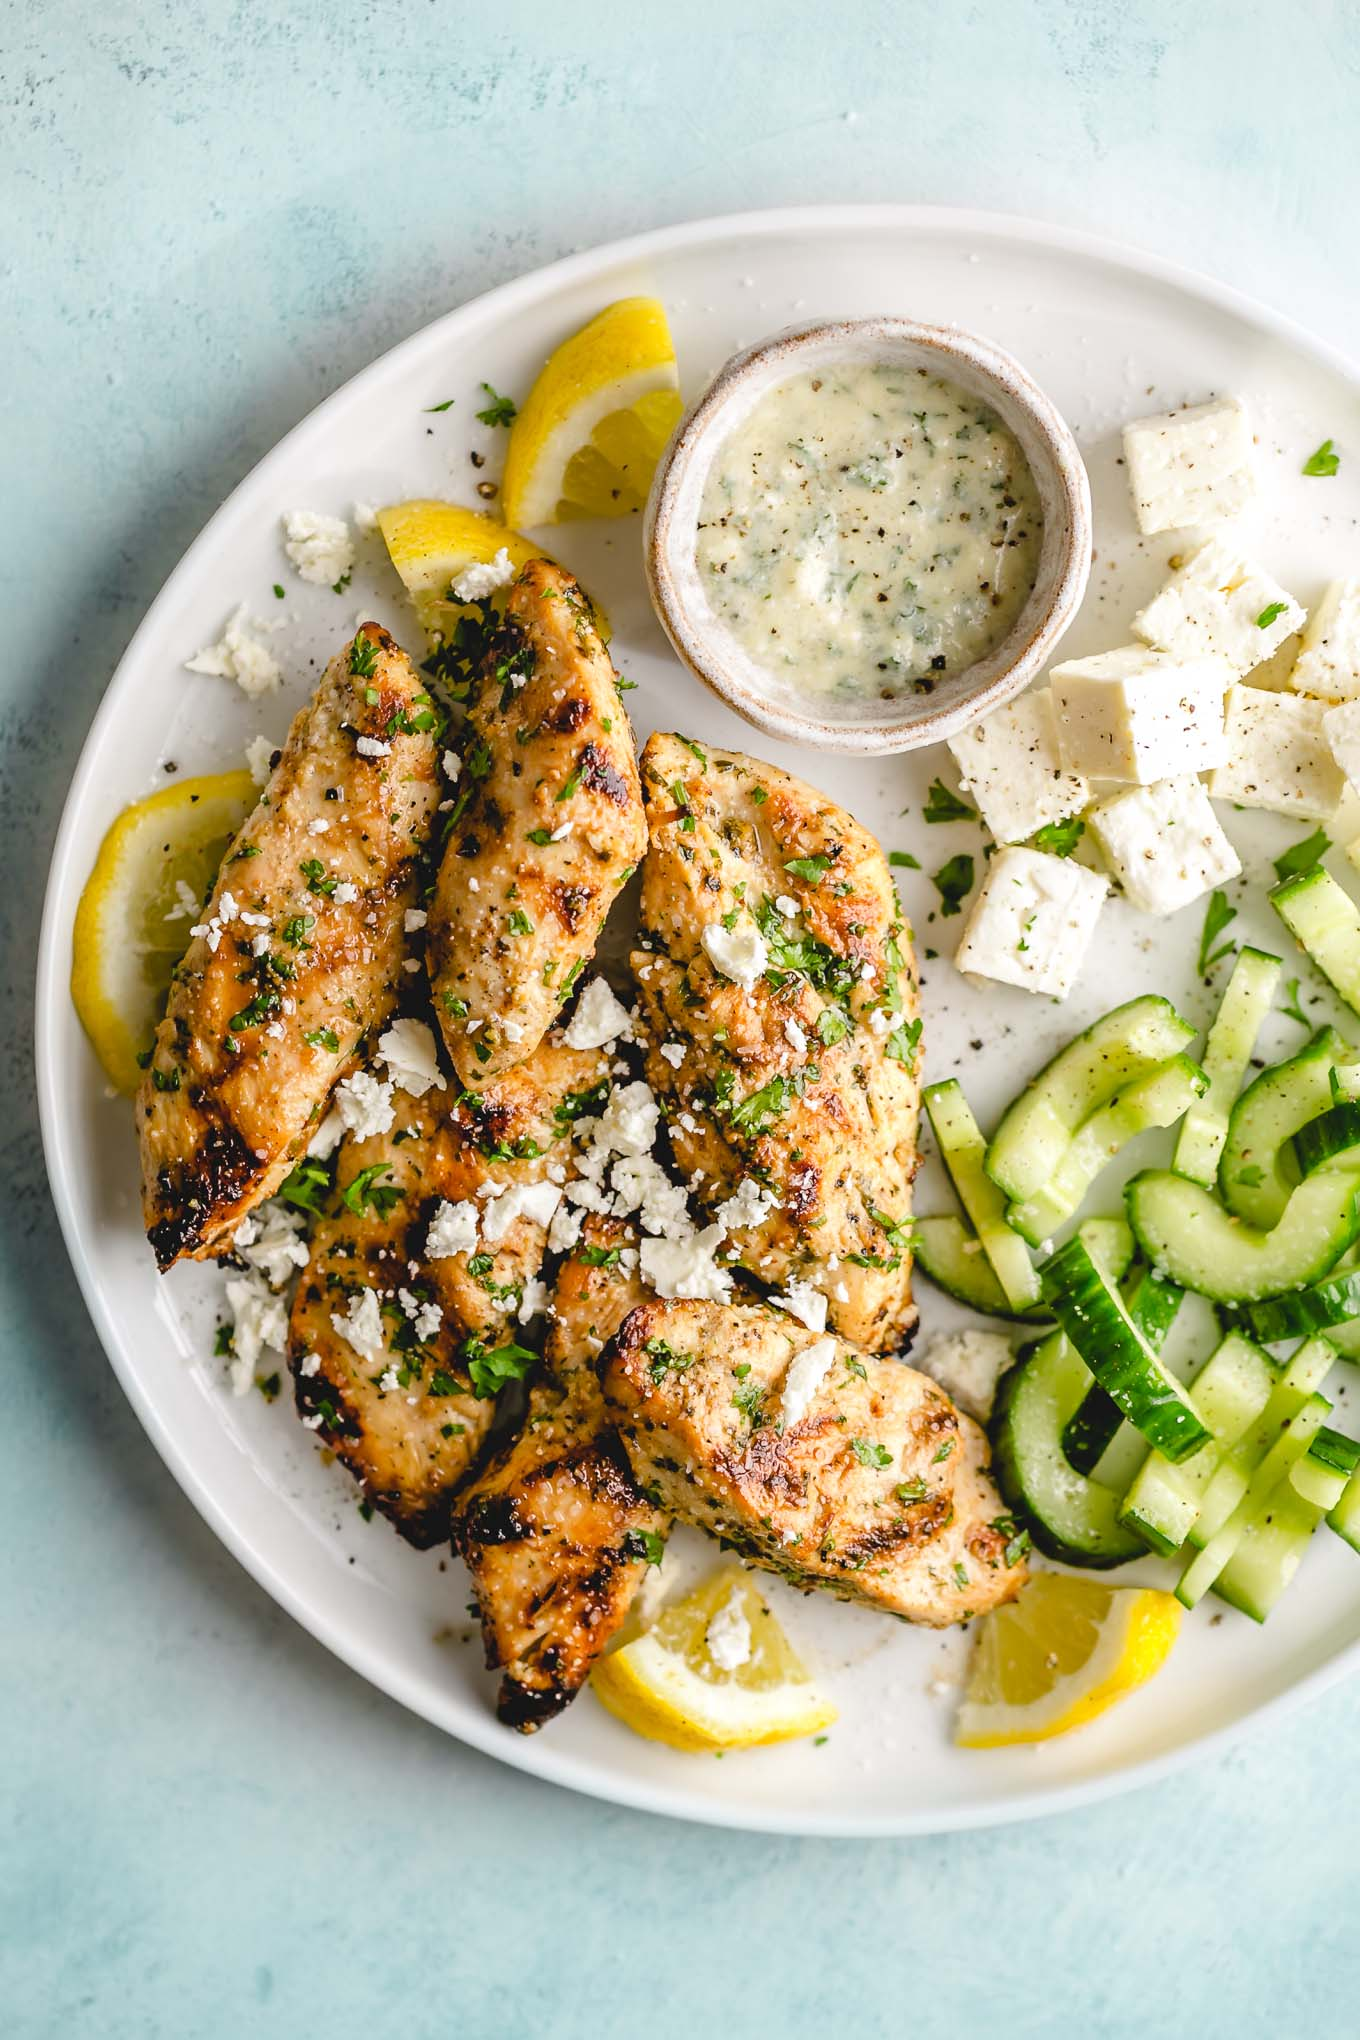 lemon herb marinade for grilled chicken